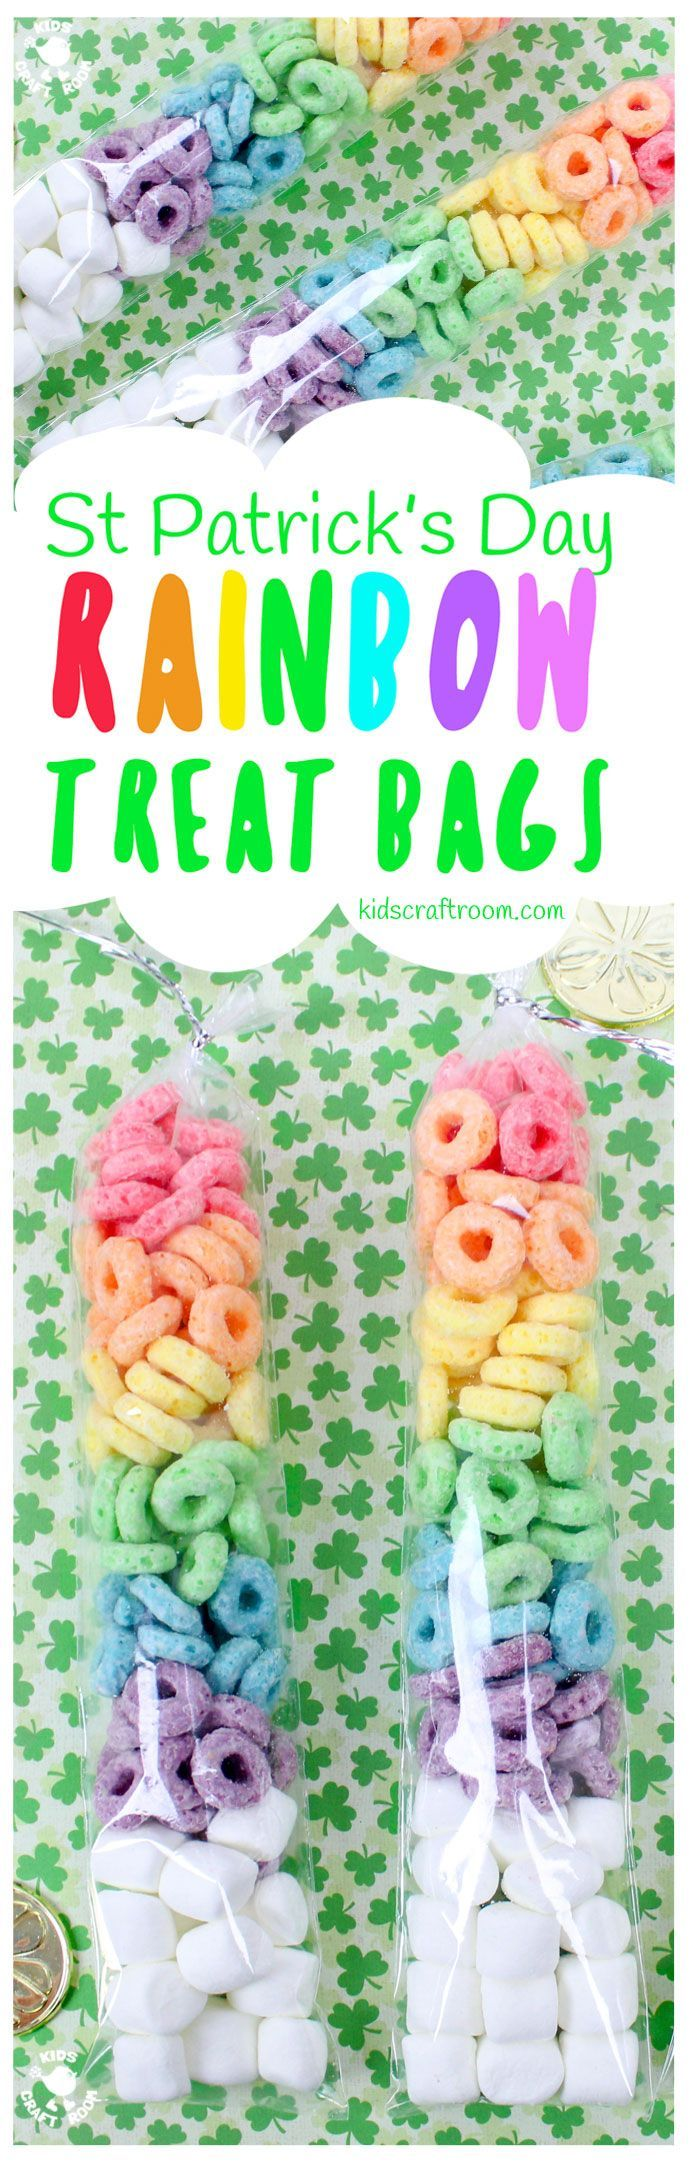 ST PATRICK'S DAY RAINBOW TREAT BAGS - need a quick and easy rainbow activity for the kids? These St Patrick's Day Rainbow Treat Bags are simple and fun to make and a lovely thrifty gift idea to share with friends too. Great if you need St Patrick's Day treats for a whole class and don't want to break the bank! #StPatricksDay #StPaddys #Rainbow #StPatricksDayCrafts #kidscrafts #rainbowcrafts #cookingwithkids #treats via @KidsCraftRoom